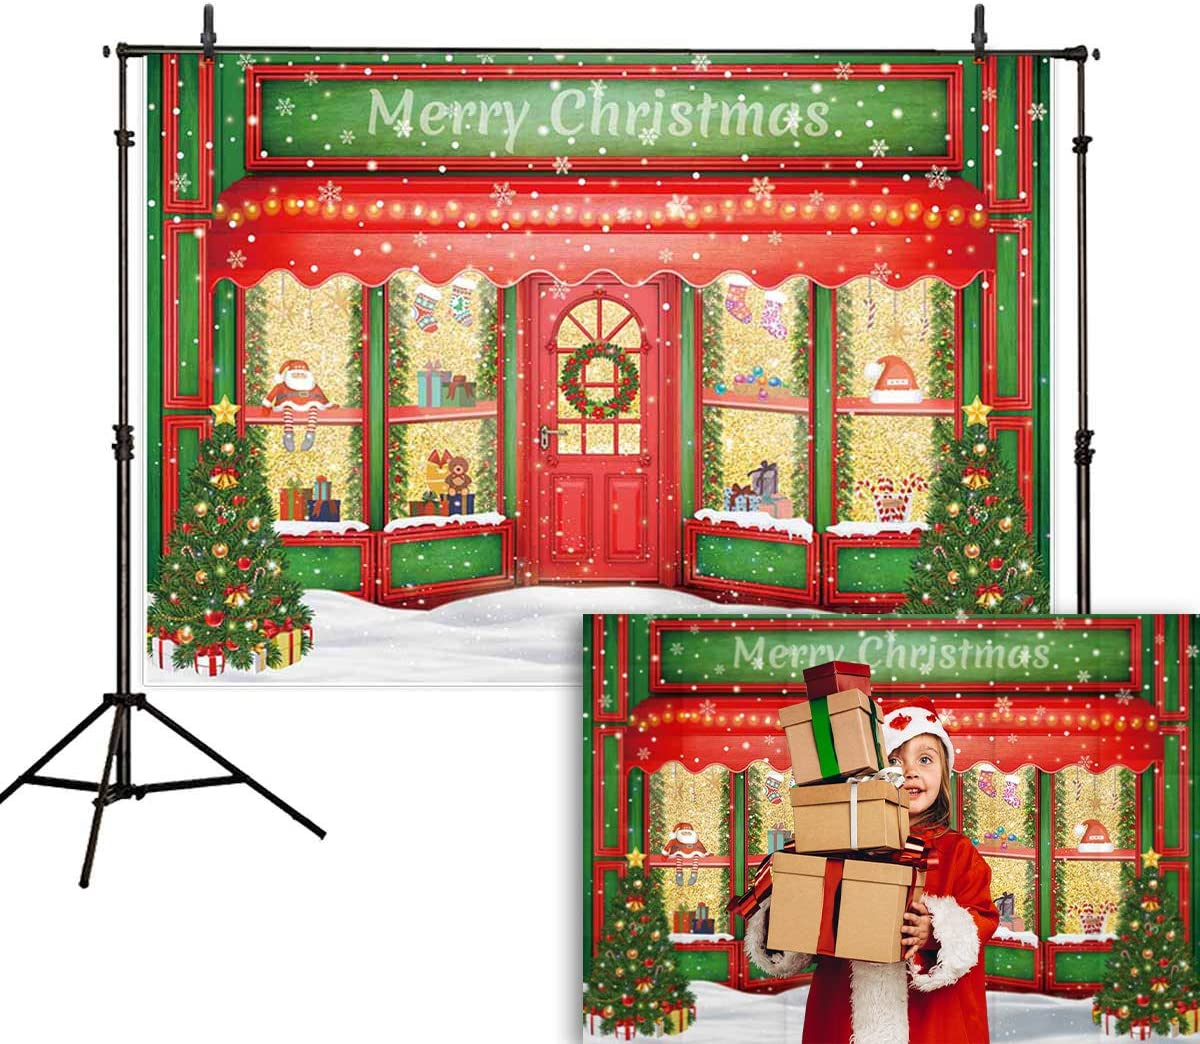 Zhy Winter Christmas Blizzard Valley Christmas Tree 7X5FT Vinyl Photography Photo Background Merry Christmas New Year Party Birthday Cake Table Banner Wall Decor Photo Shoot Studio